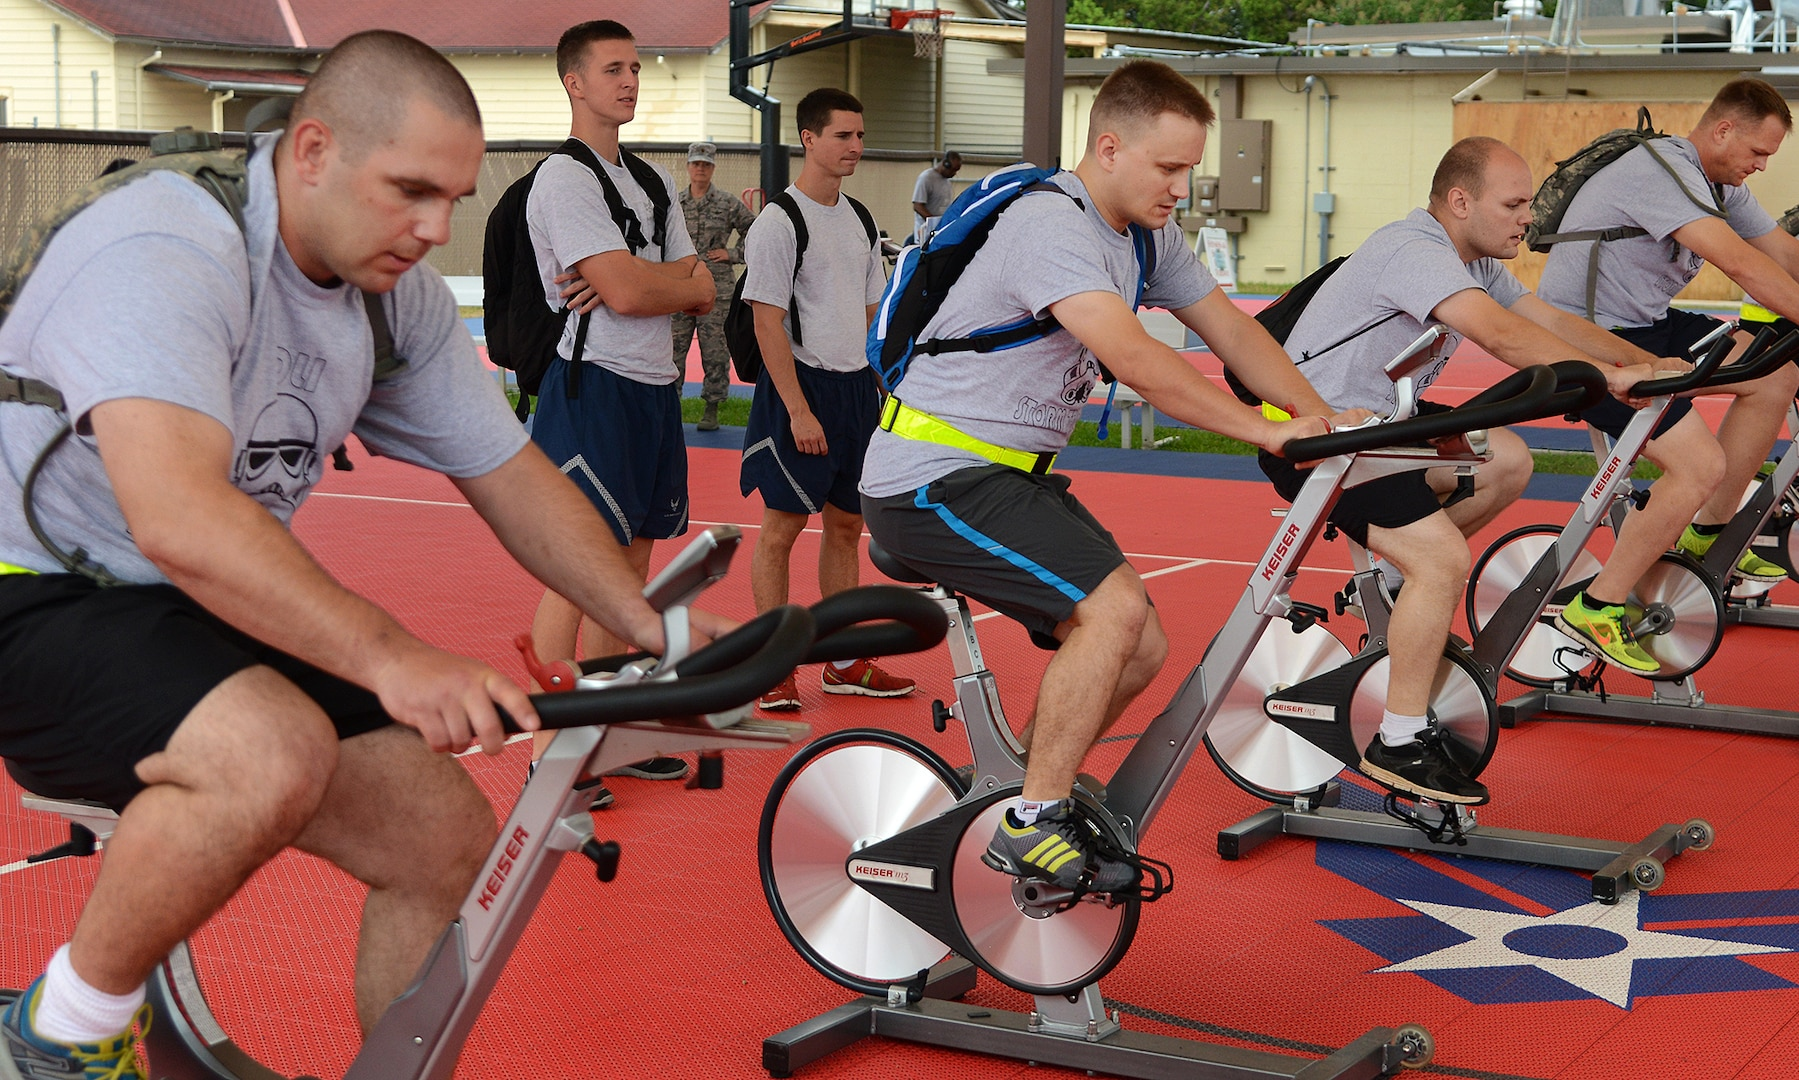 Members of team Storm Troopers, begin the race at the team bike station, part of the Community Quest race September 18, at Joint Base San Antonio-Lackland. (U.S. Air Force photo by Benjamin Faske/released)